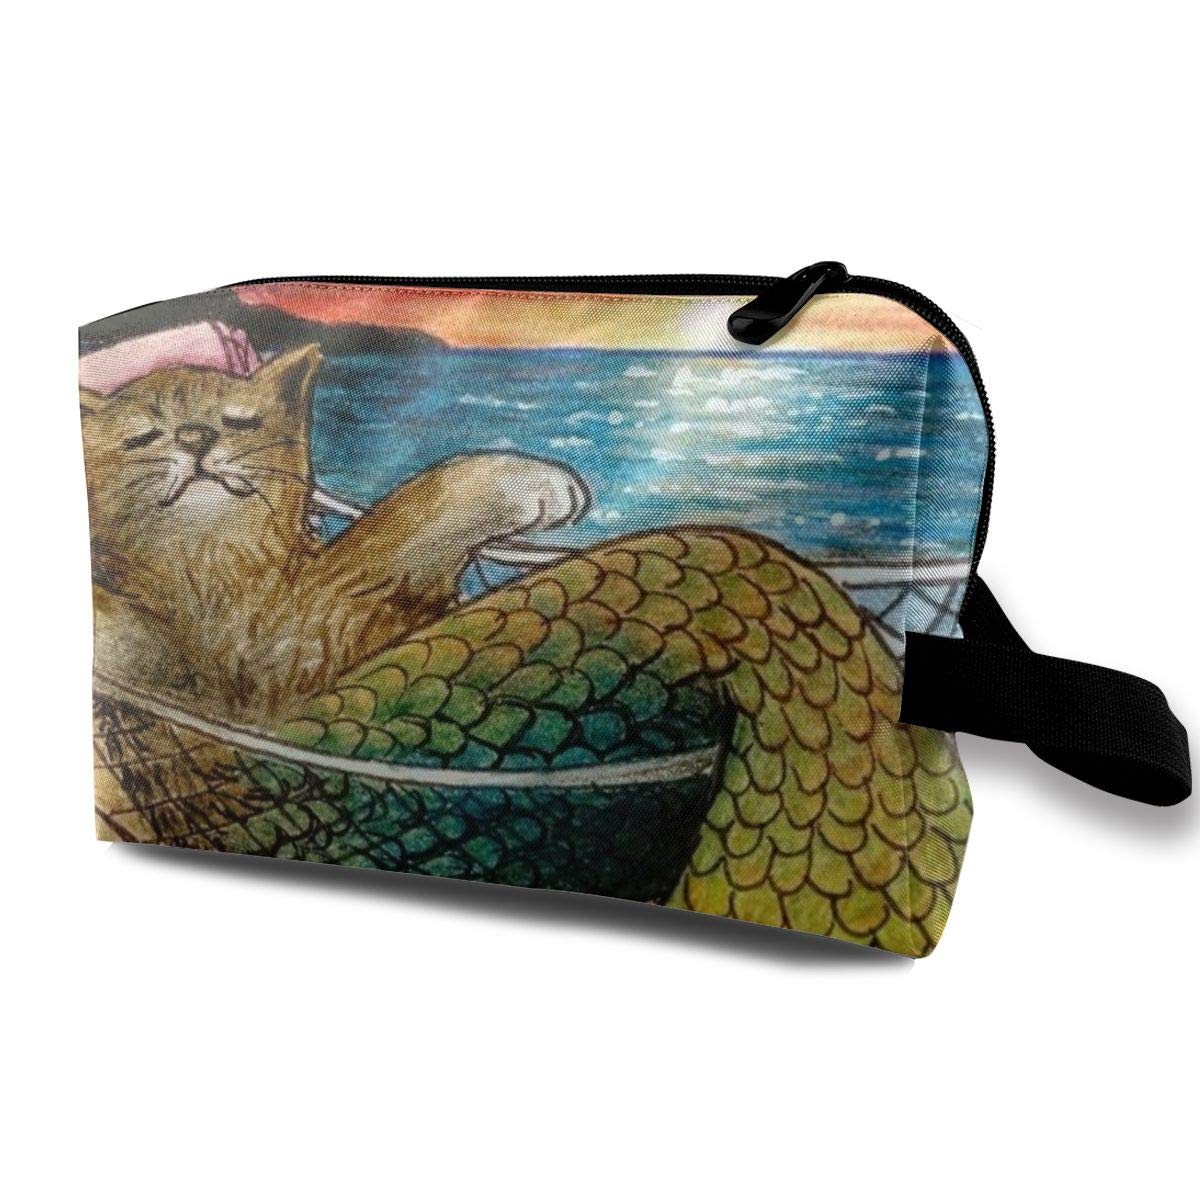 Funny Mermaid Cat On The Beach Toiletry Bag Multifunction Cosmetic Bag Portable Makeup Pouch Travel Organizer Bag For Women Girls